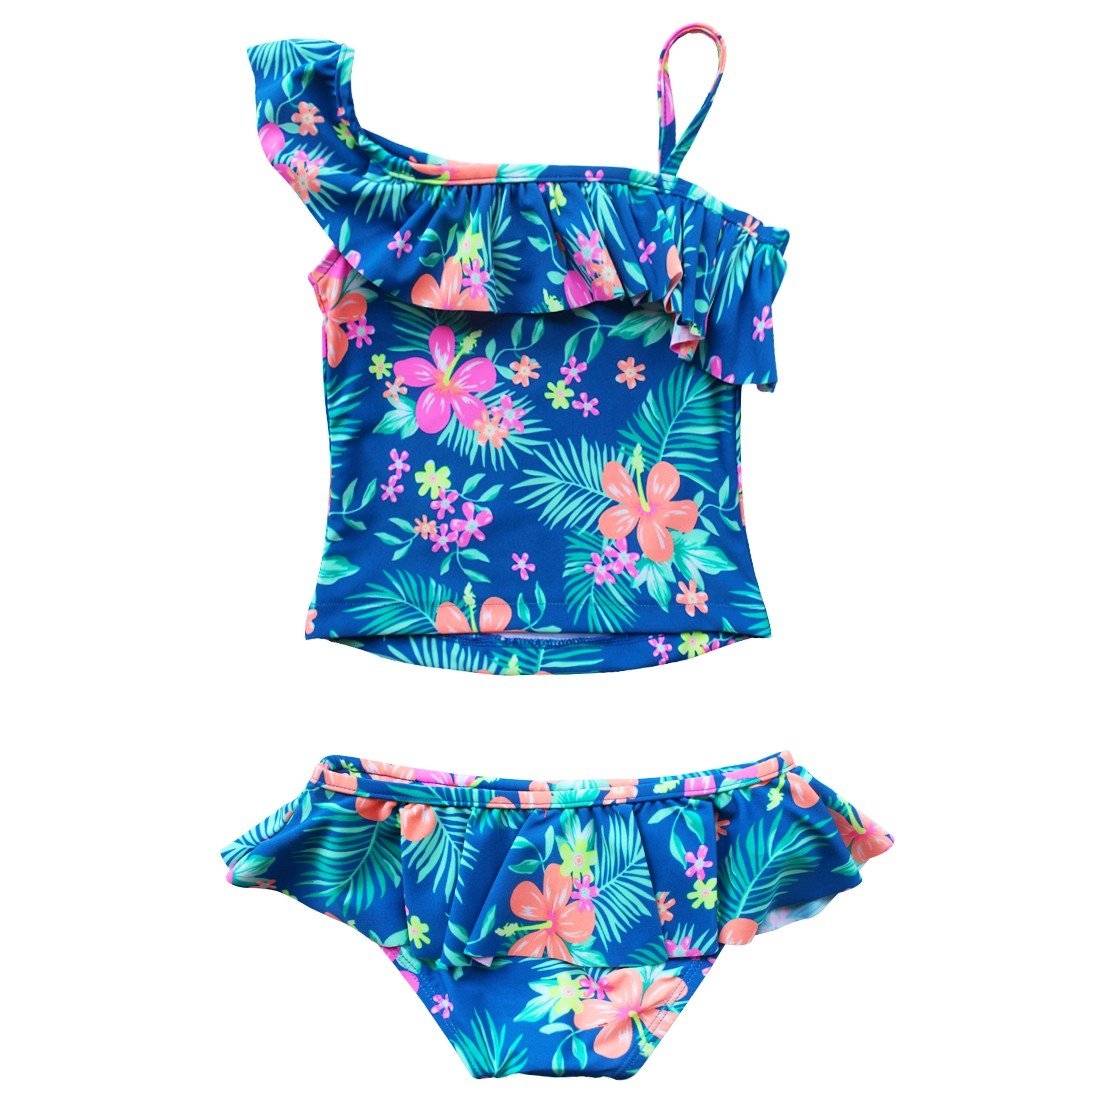 TiaoBug Kids Girls Beach Sport Strap Tankini 2-Piece Swimsuit Bikini Cover-Up Sets Tops with Bottoms Skirt